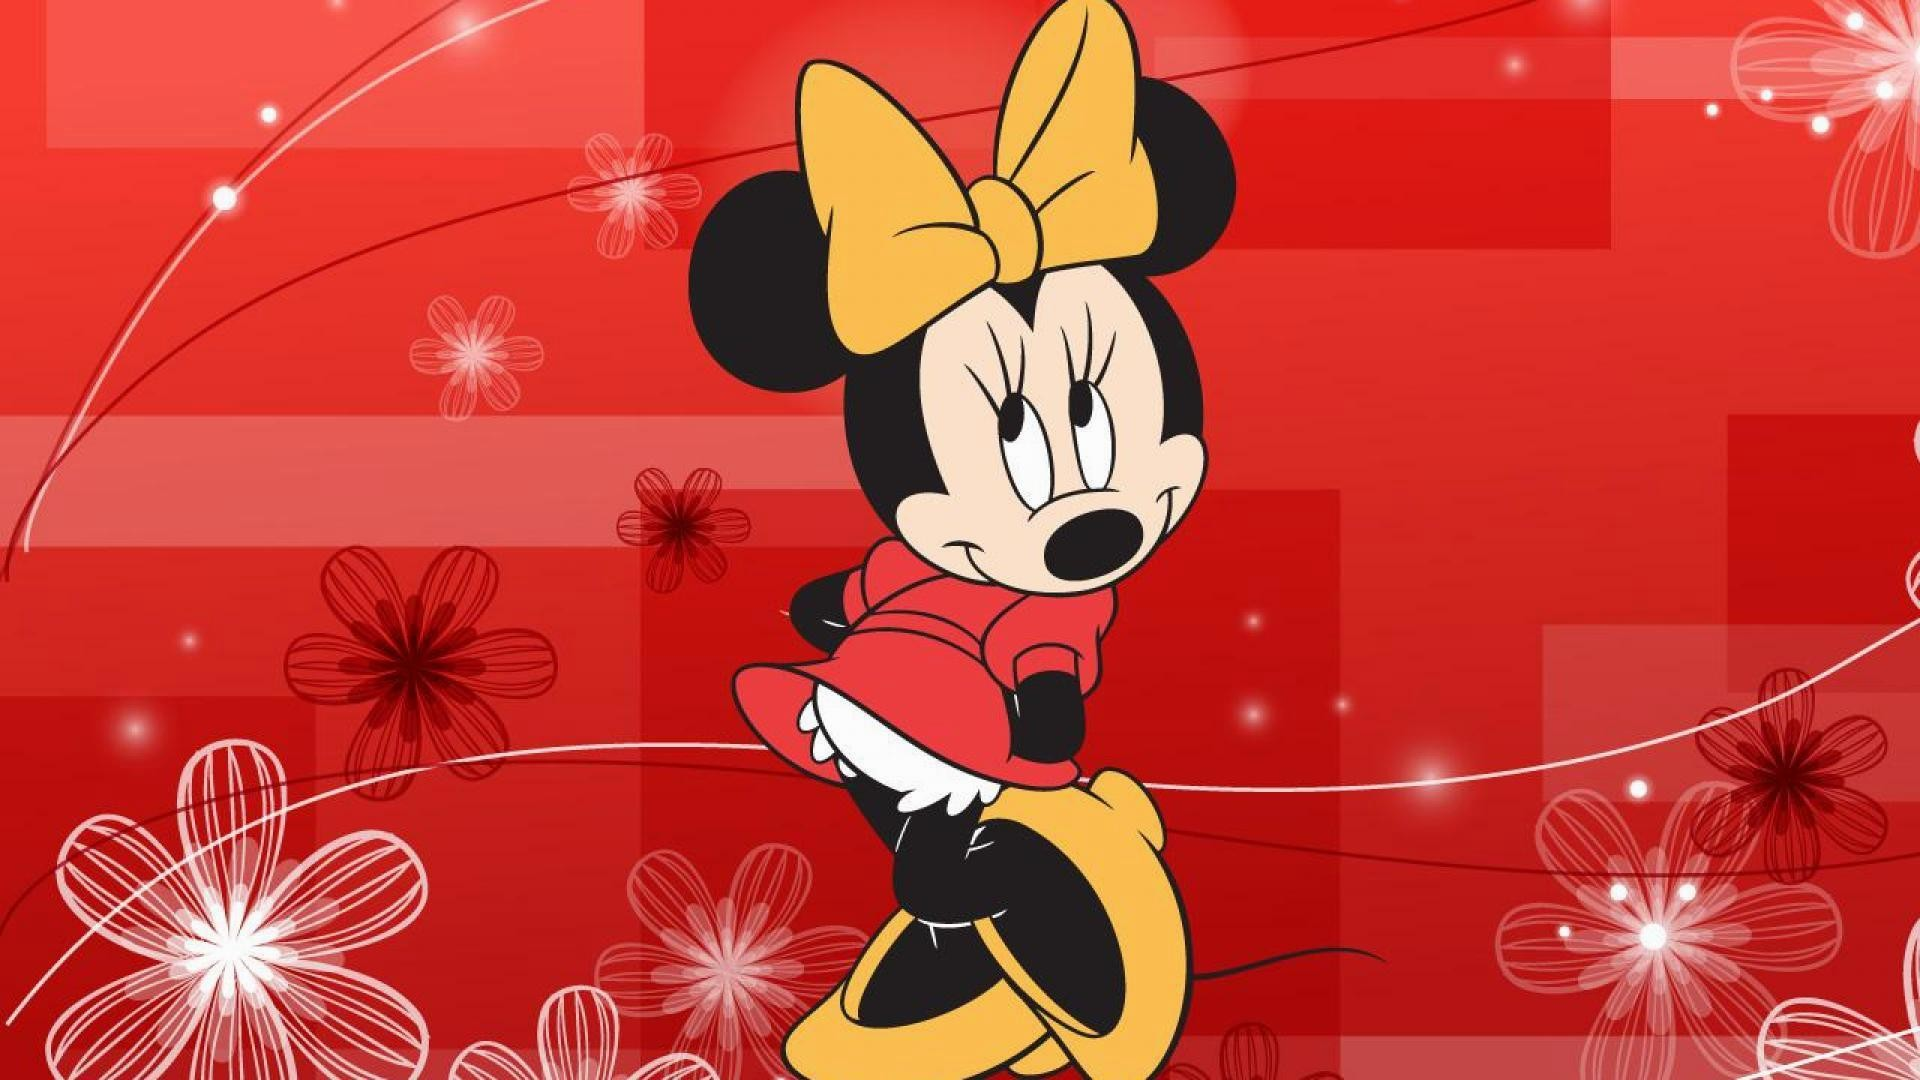 Minnie Mouse Wallpaper HD (60+ images)